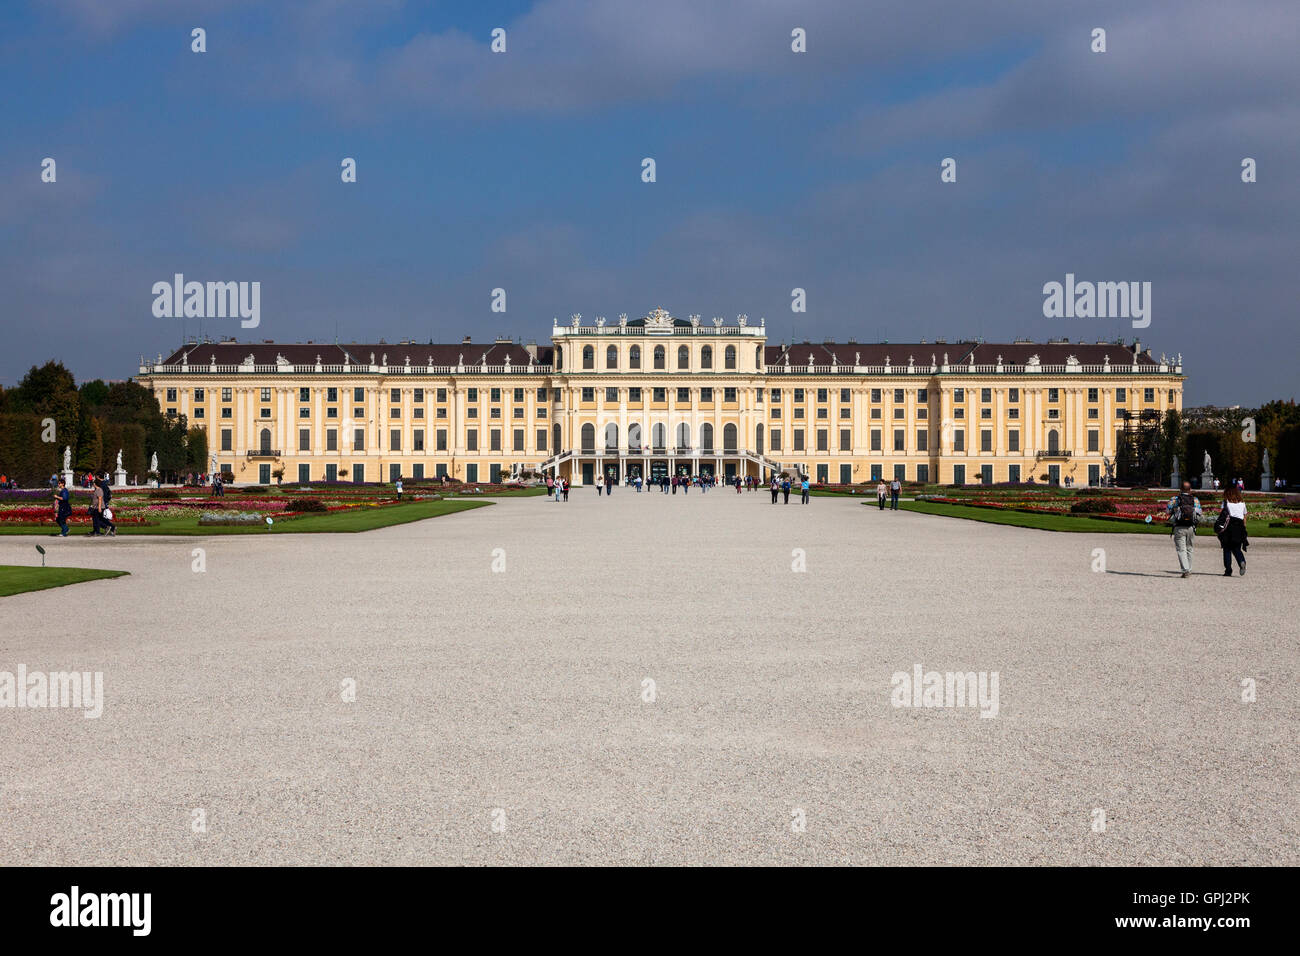 Overview of Schönbrunn Palace in Vienna, Austria, from the gardens - Stock Image